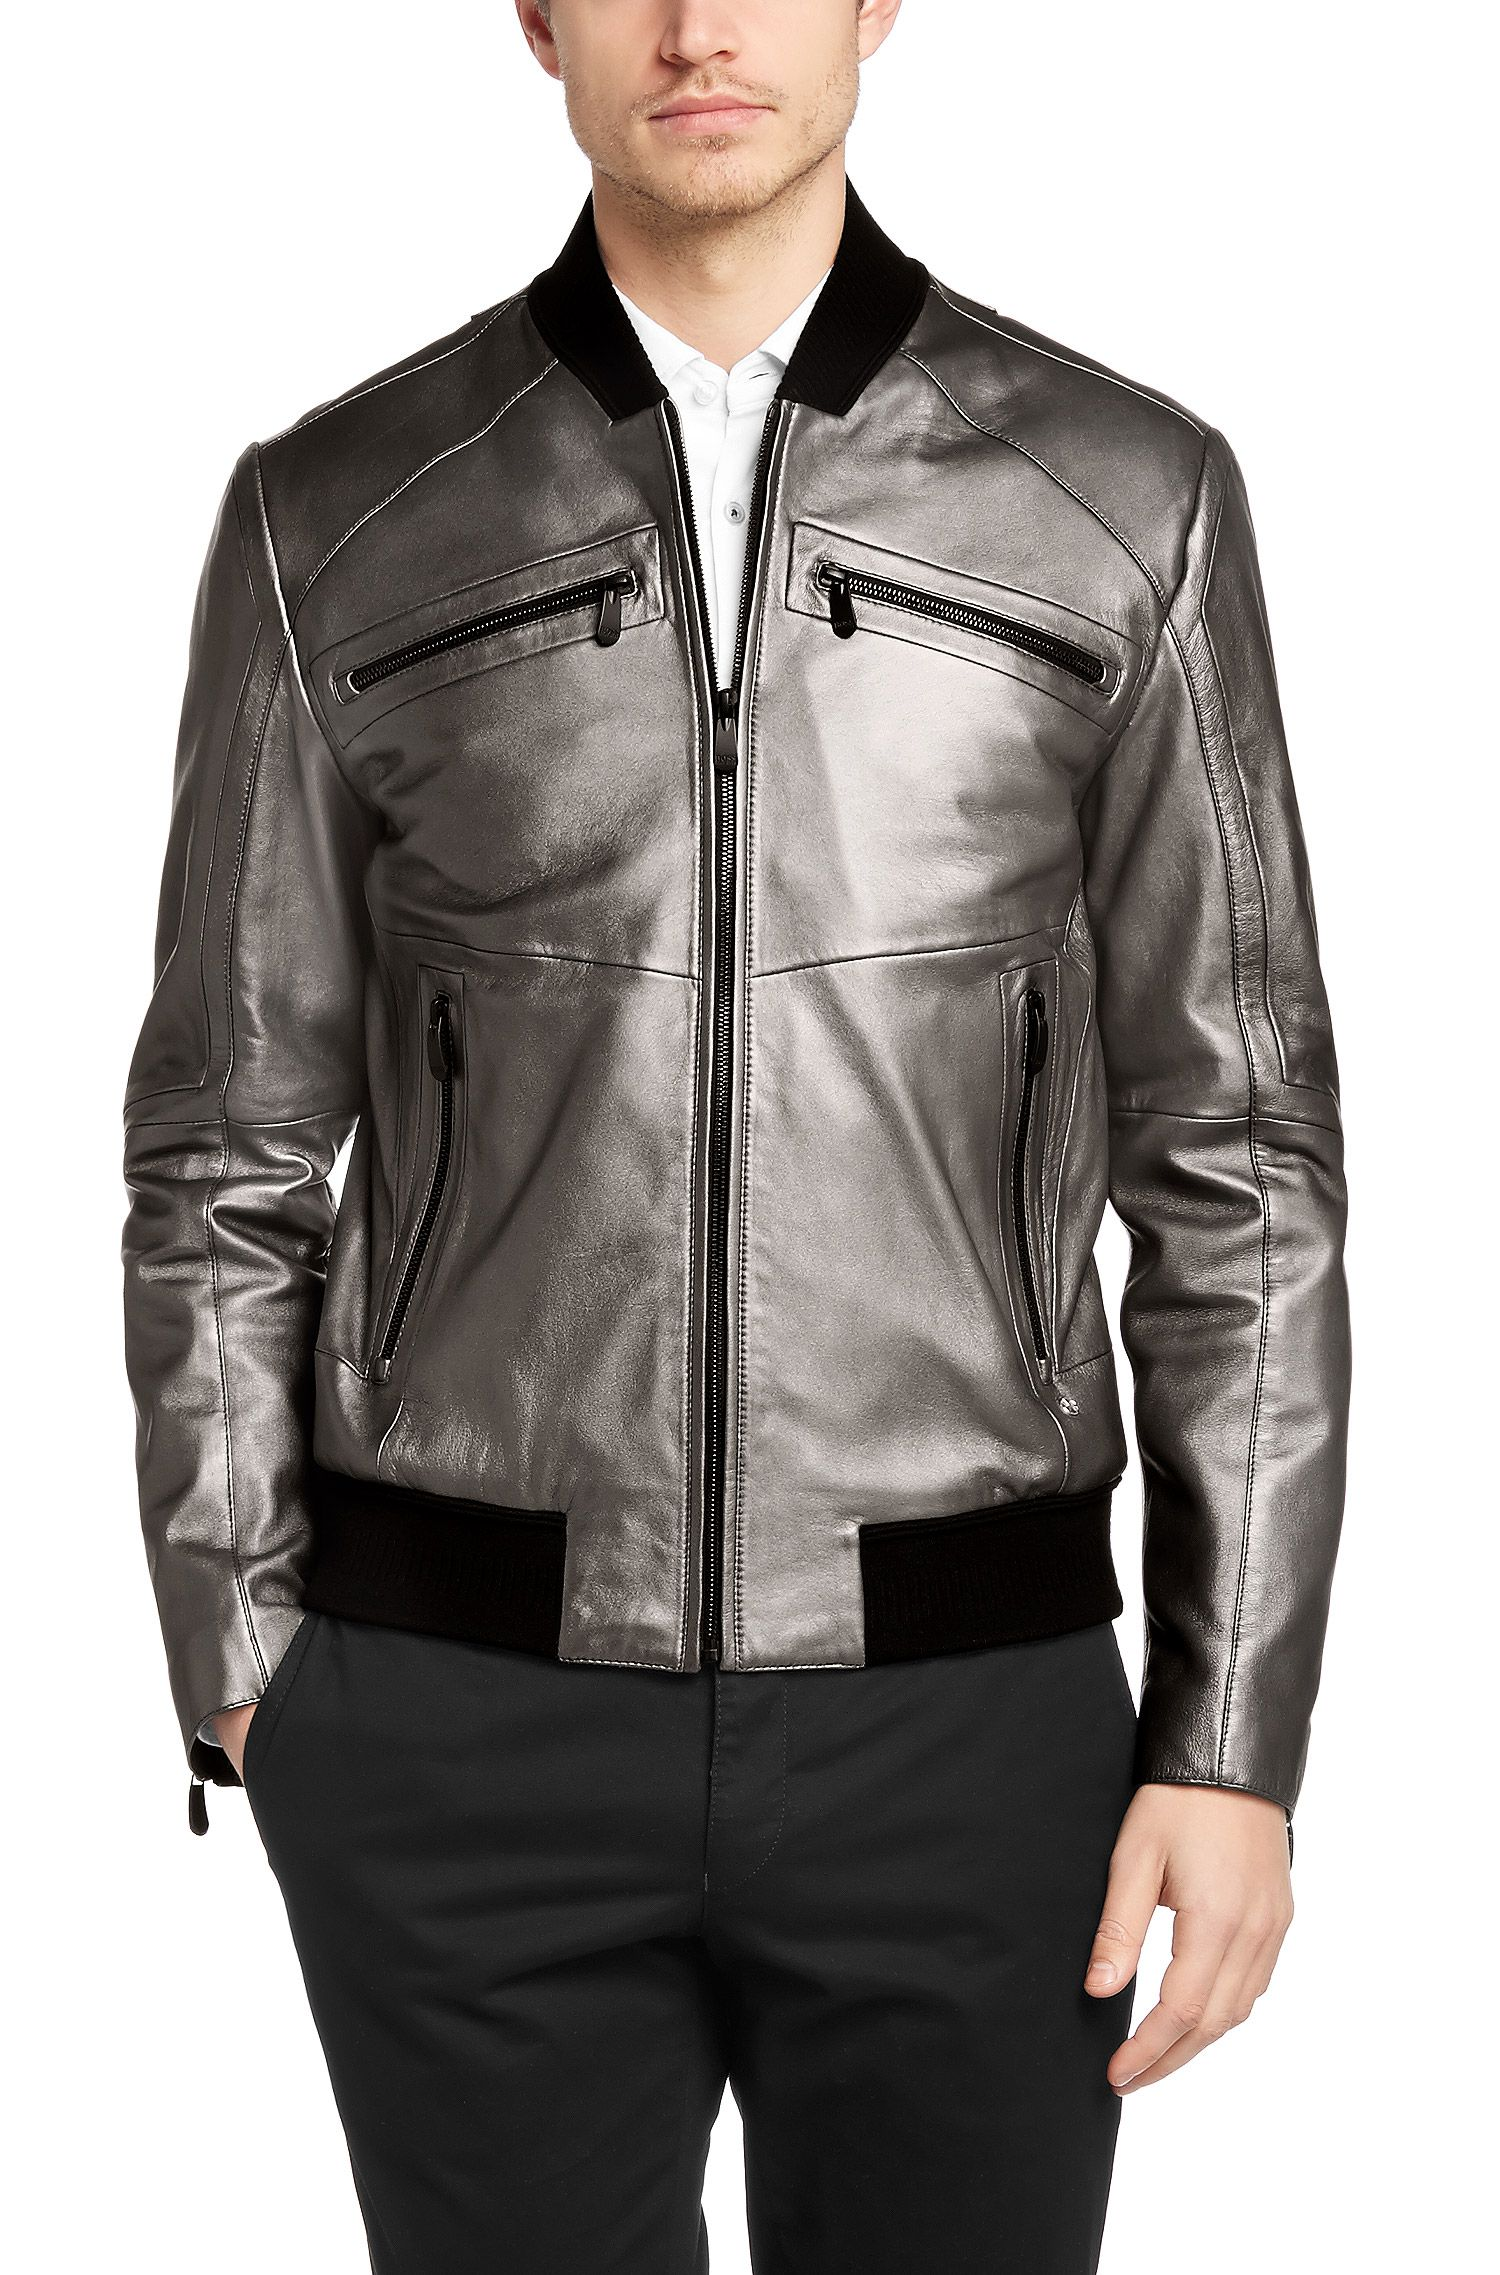 Buy cheap mercedes jacket compare football prices for for Hugo boss mercedes benz jacket